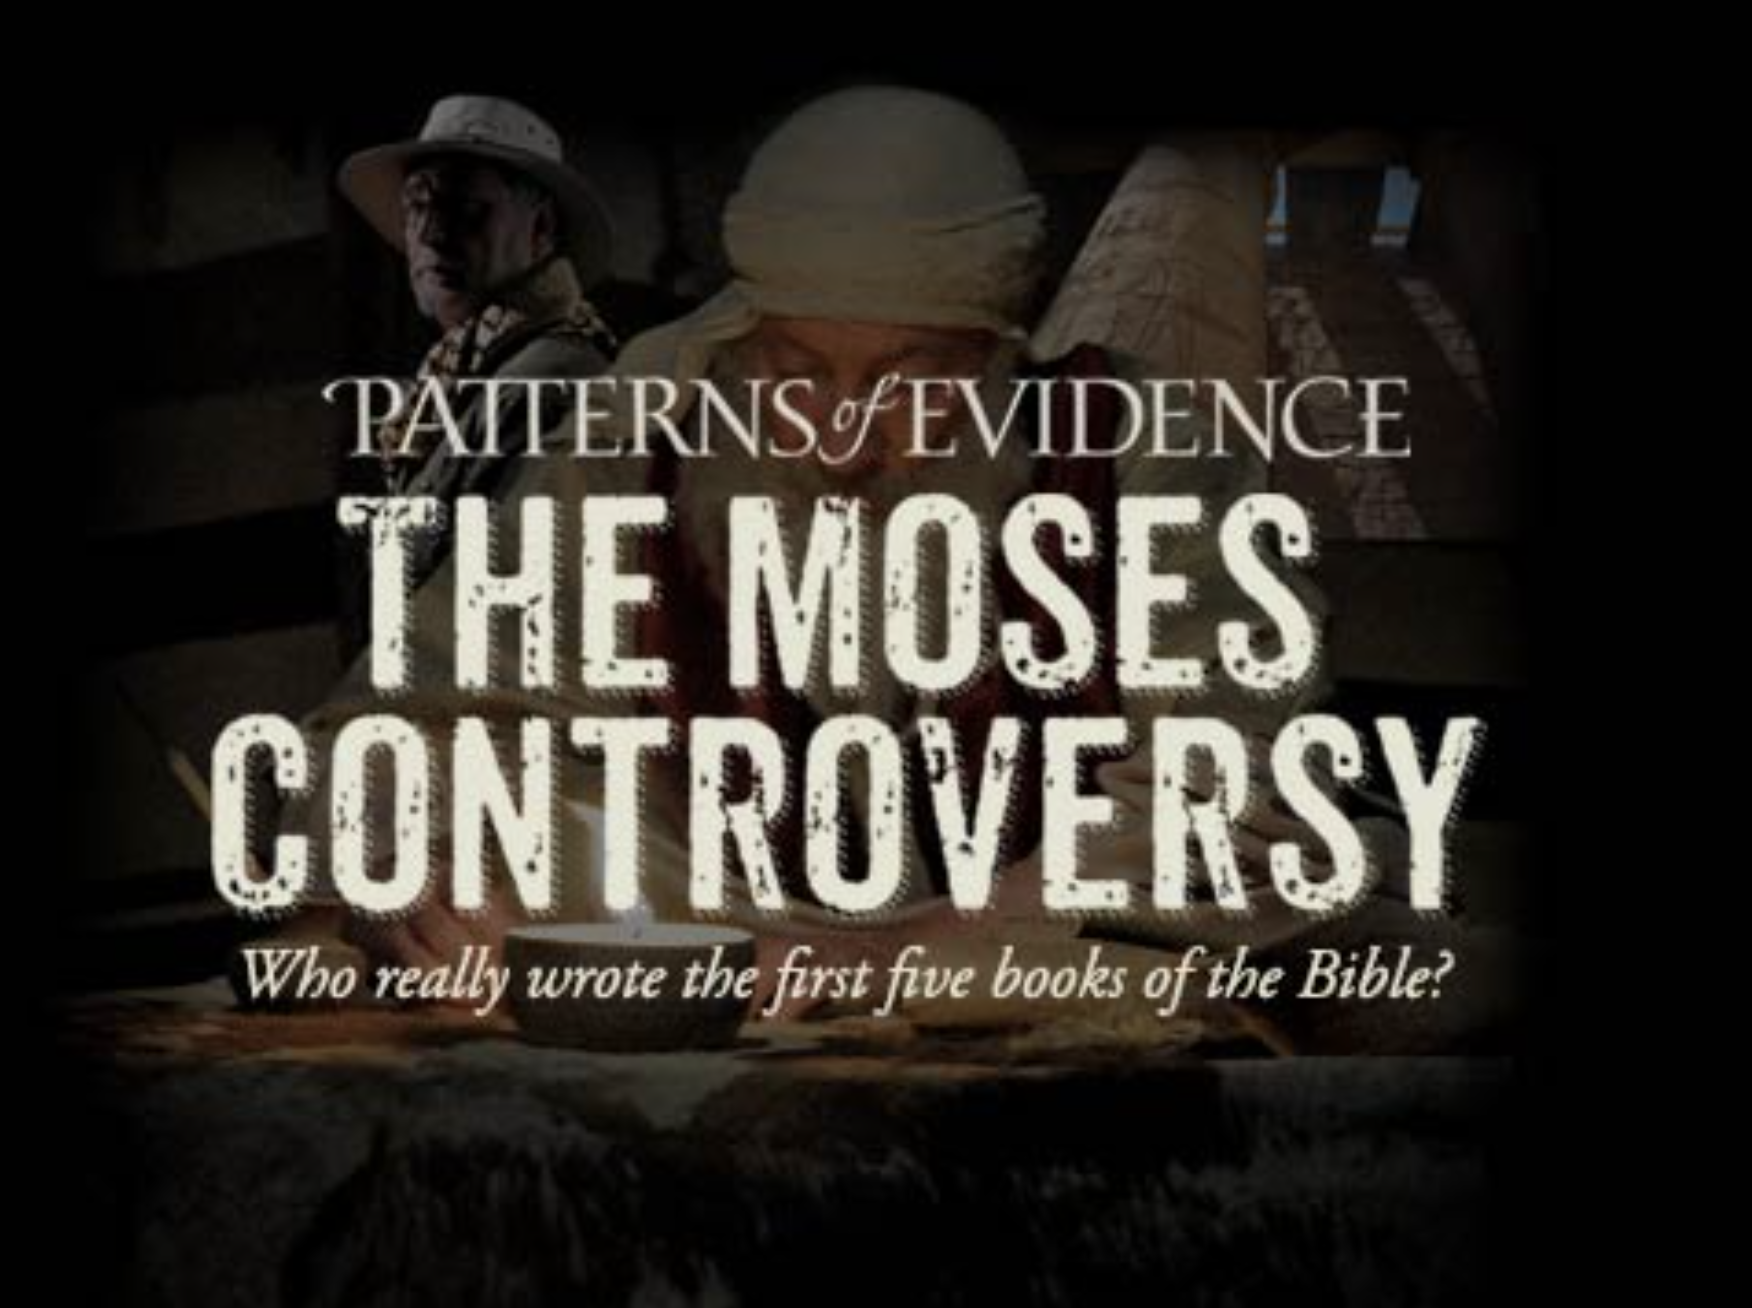 'Patterns of Evidence' film offers proof of Moses' authorship of Old Testament